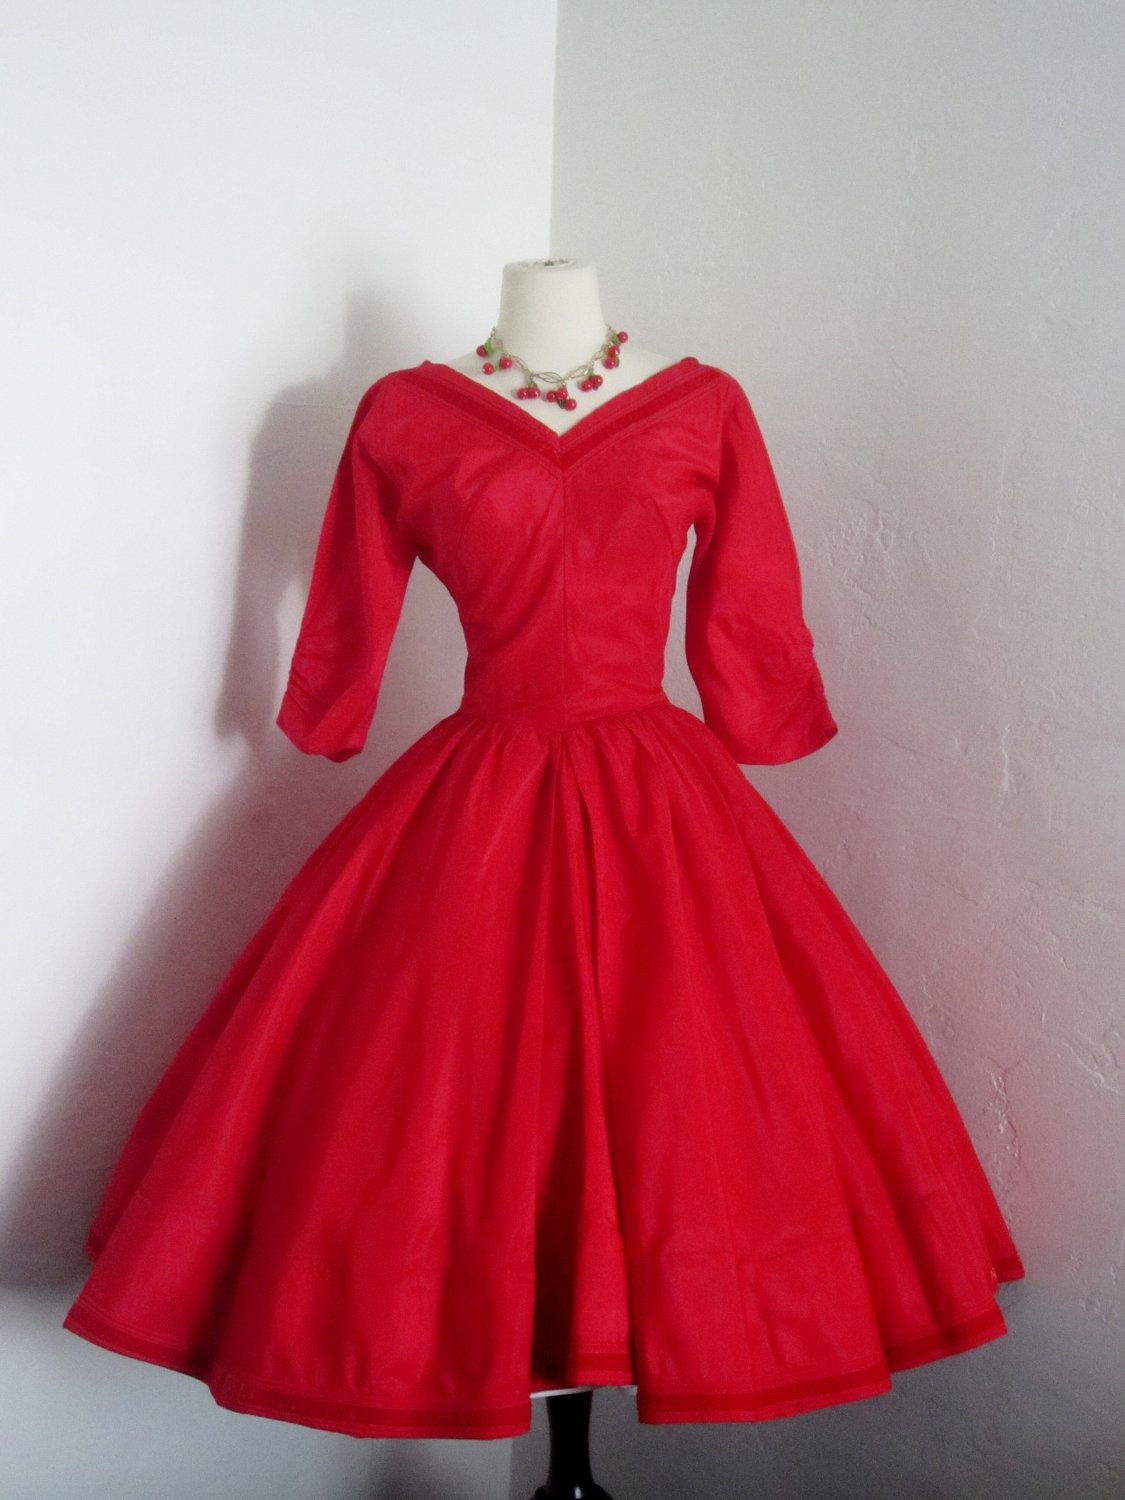 Vintage 1950 S Emma Domb California True Holiday Red Etsy Vintage Red Dress Perfect Holiday Dress Dresses [ 1500 x 1125 Pixel ]